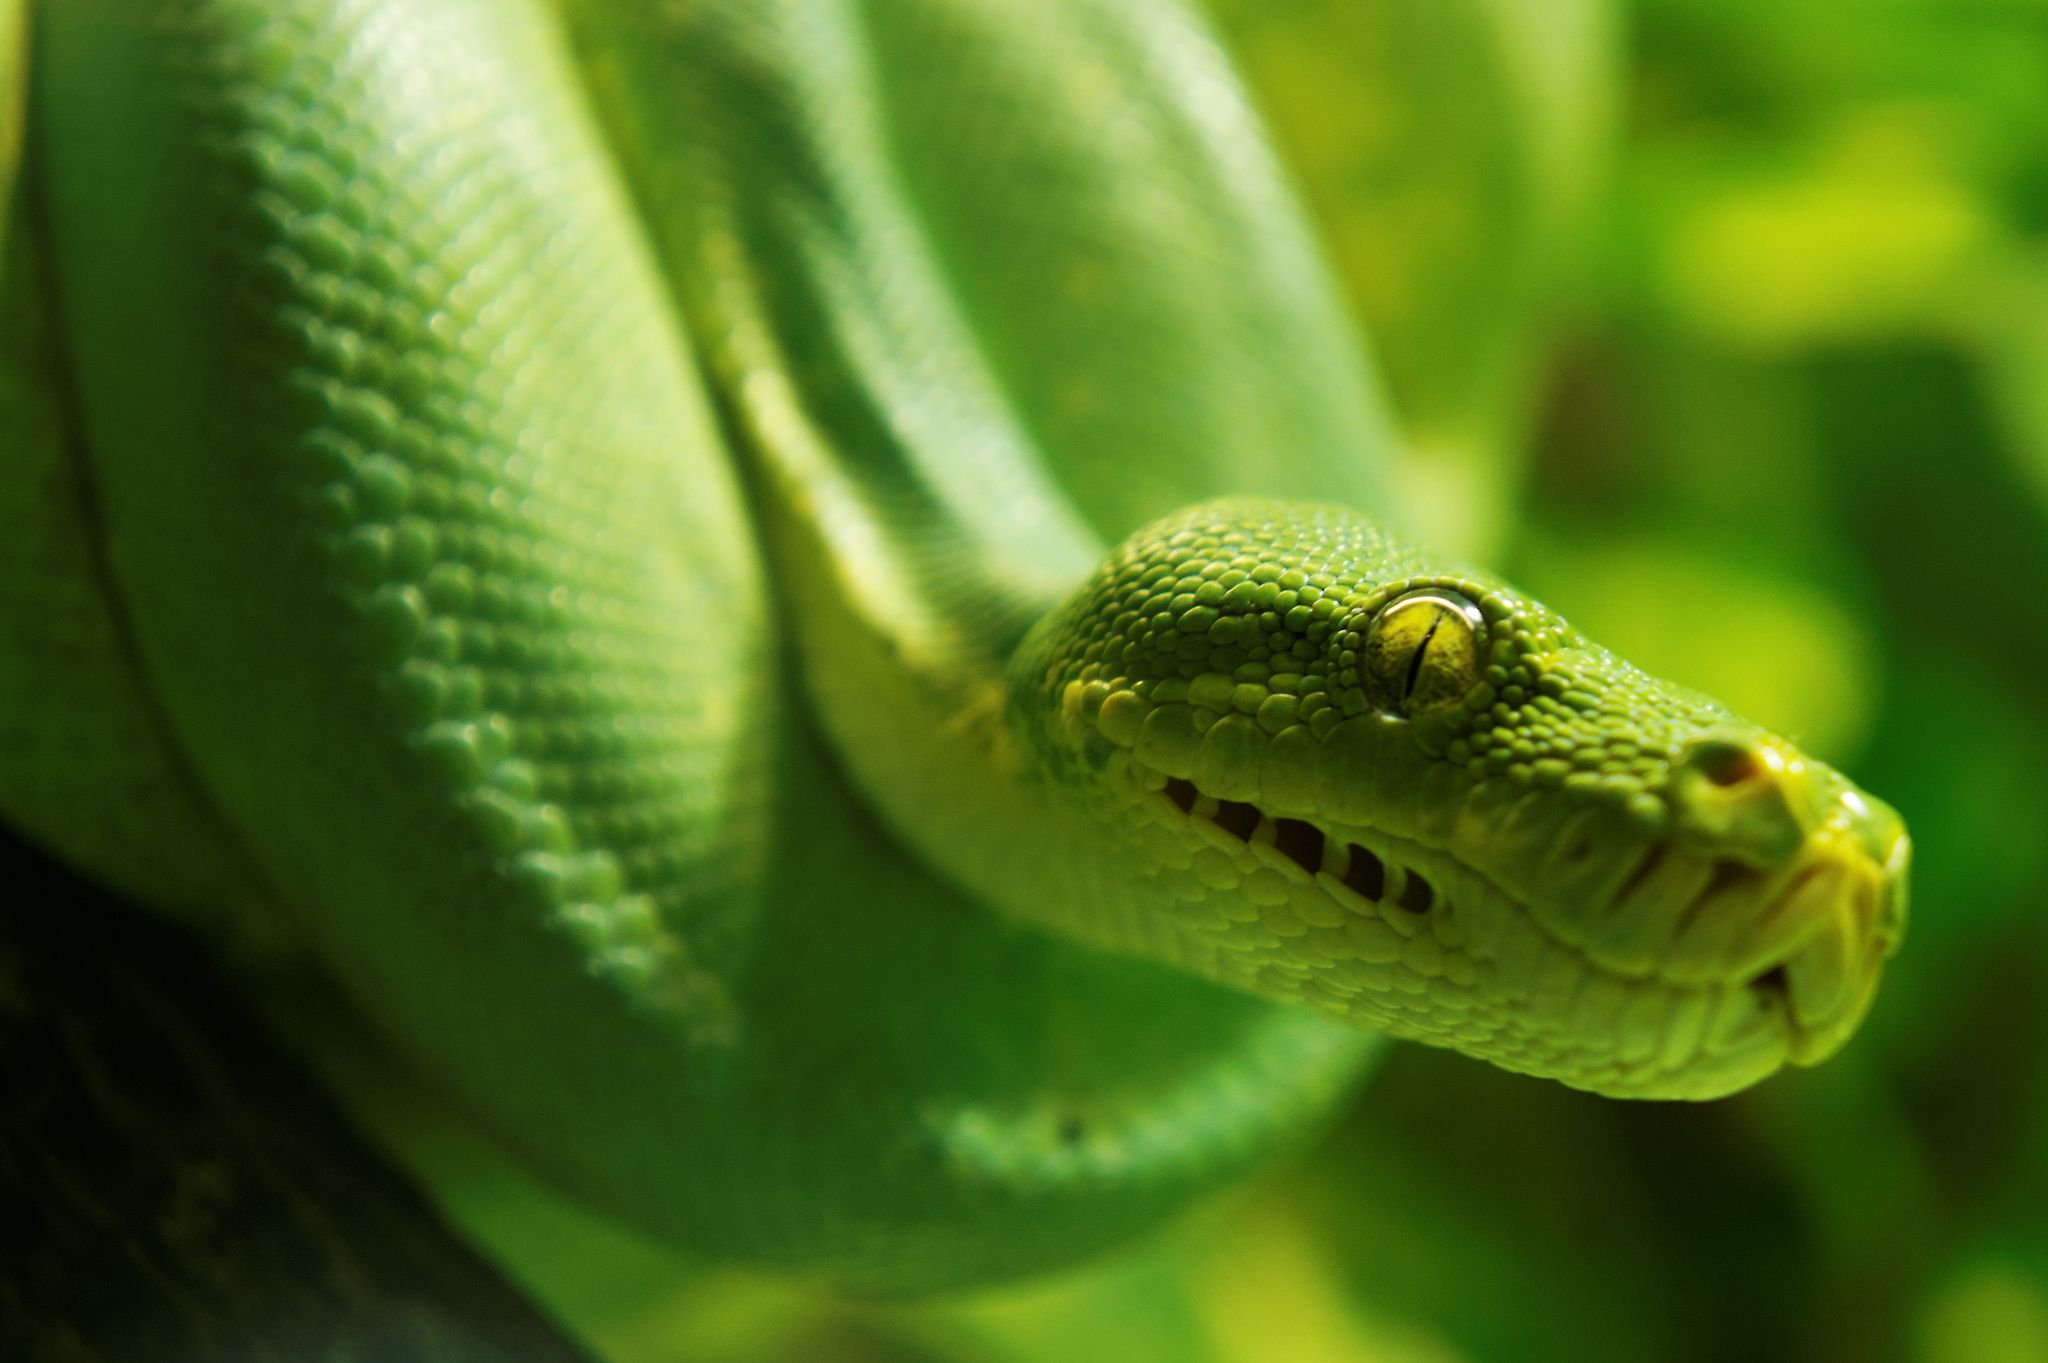 Parseltongue by Rob Higginbotham on 500px